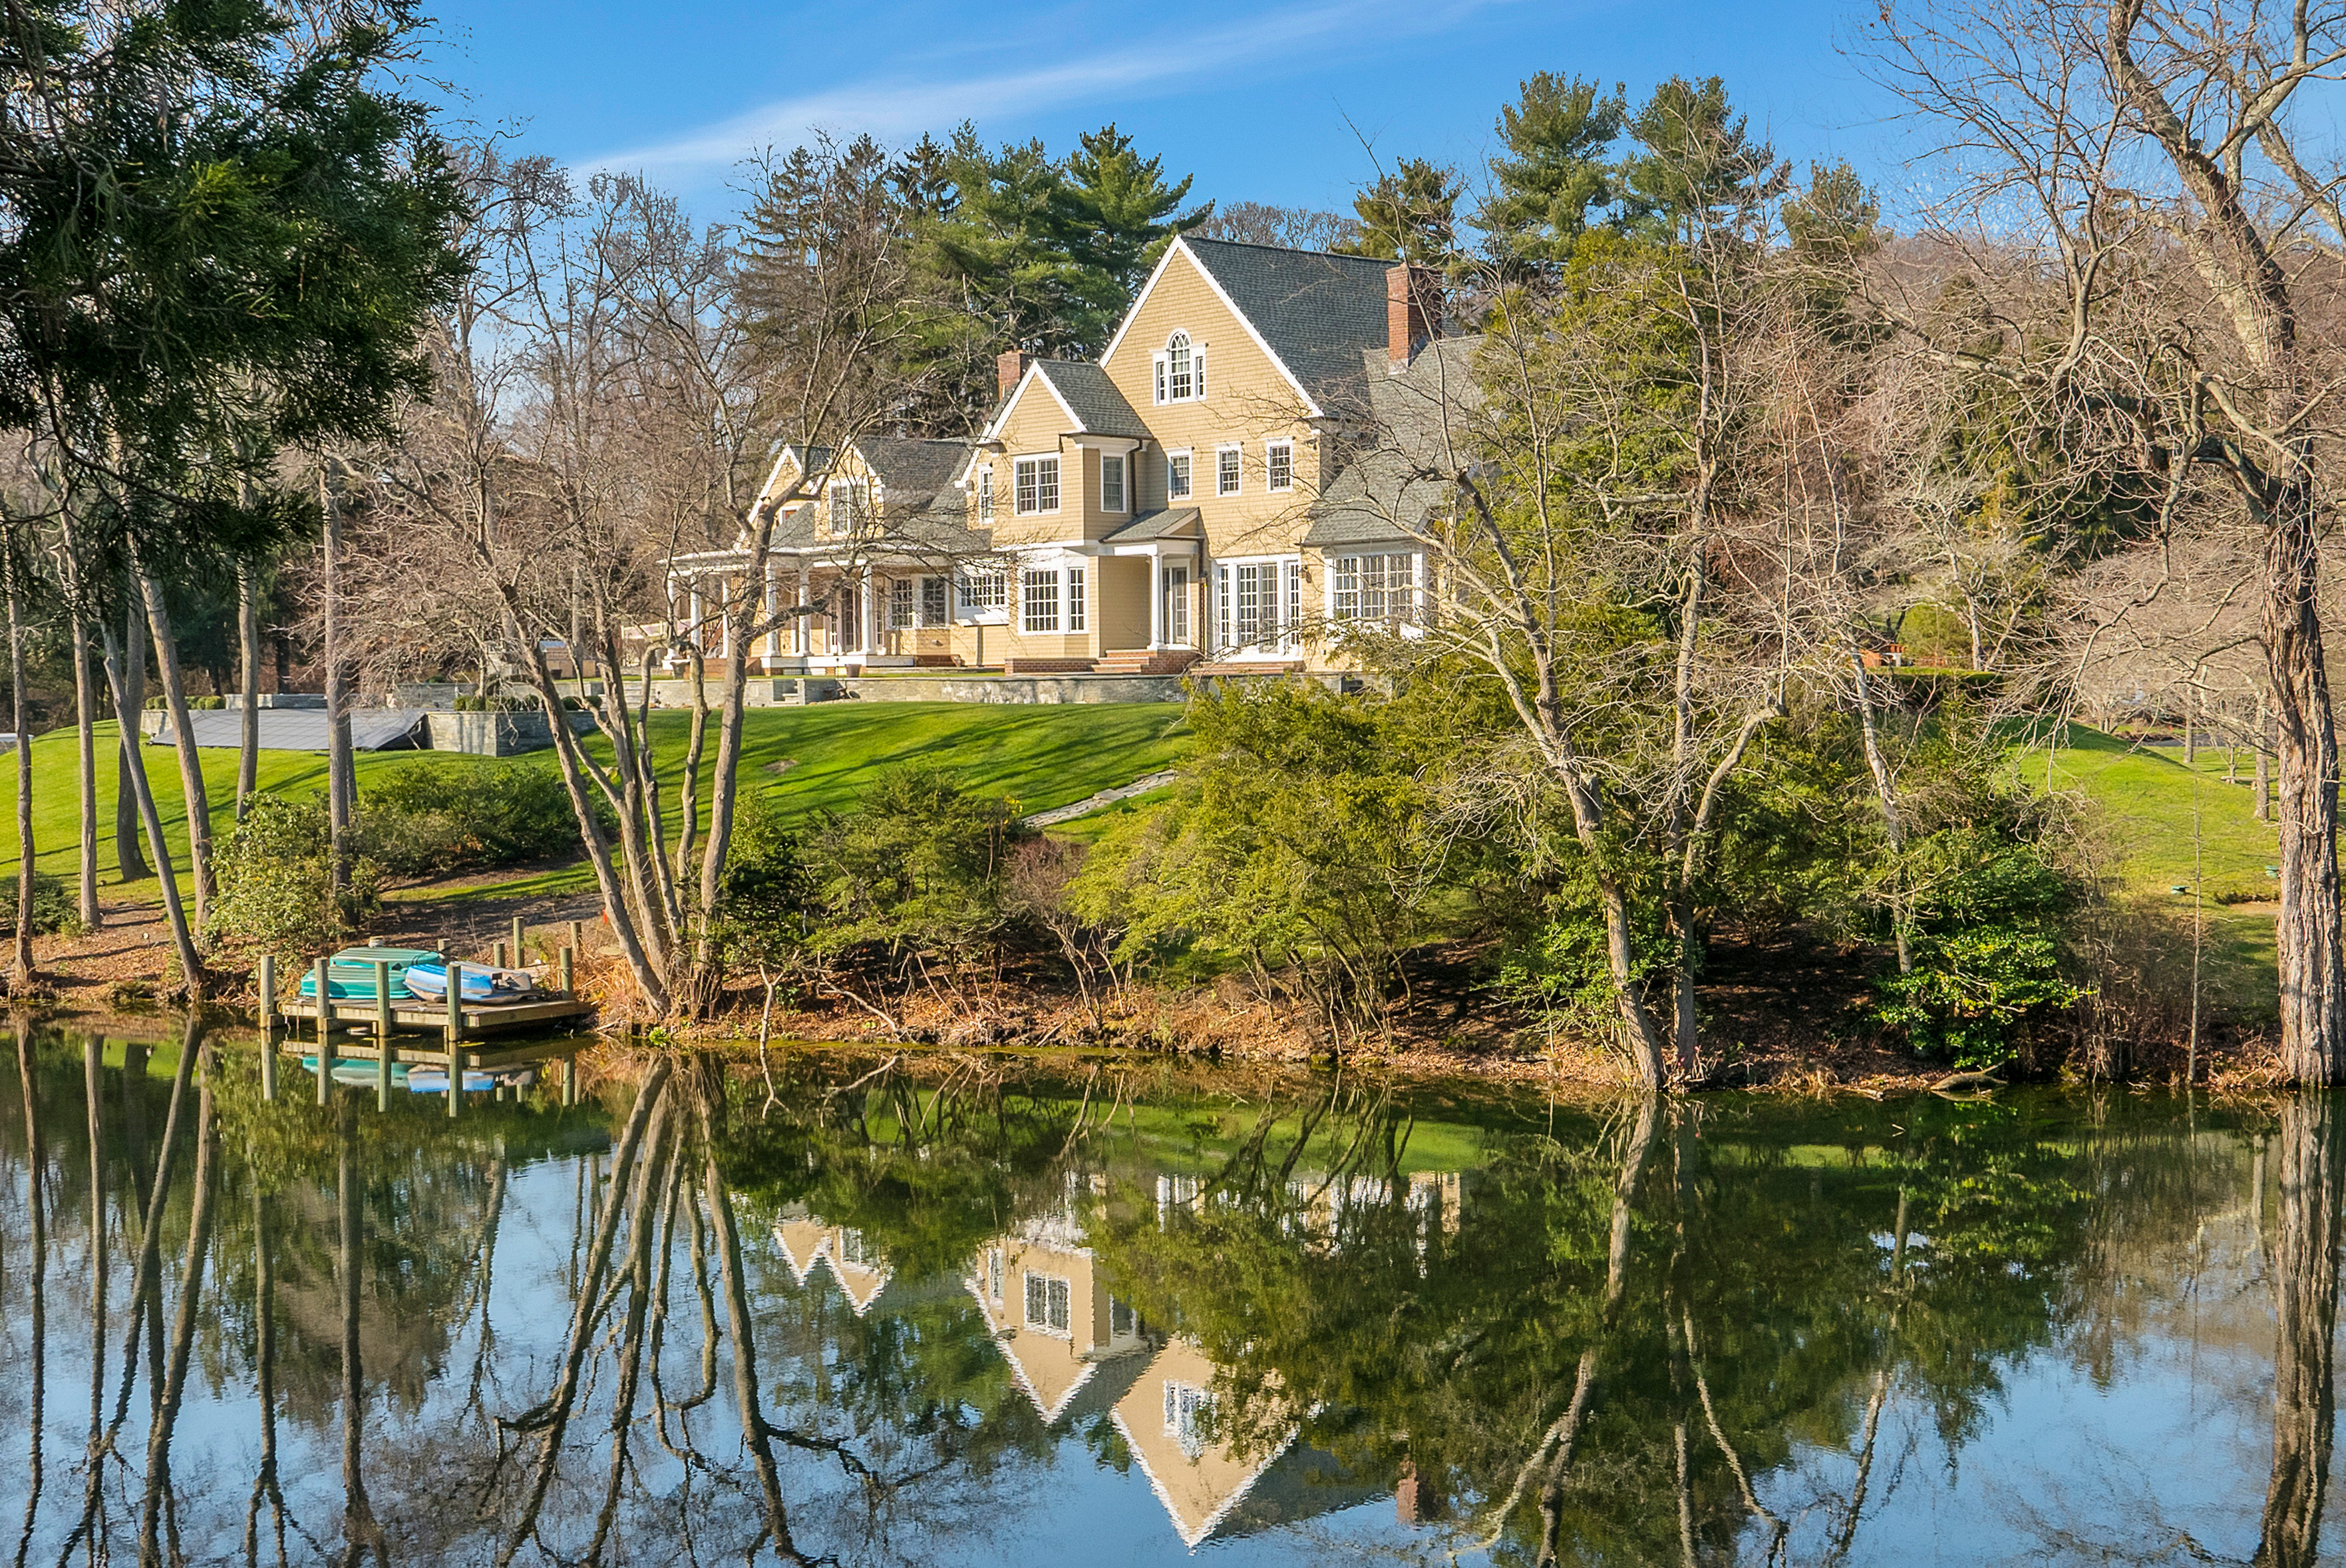 <b>6 Bedrooms, 5,844 sq. ft.</b><br/>Custom estate with pond and stone wine cellar